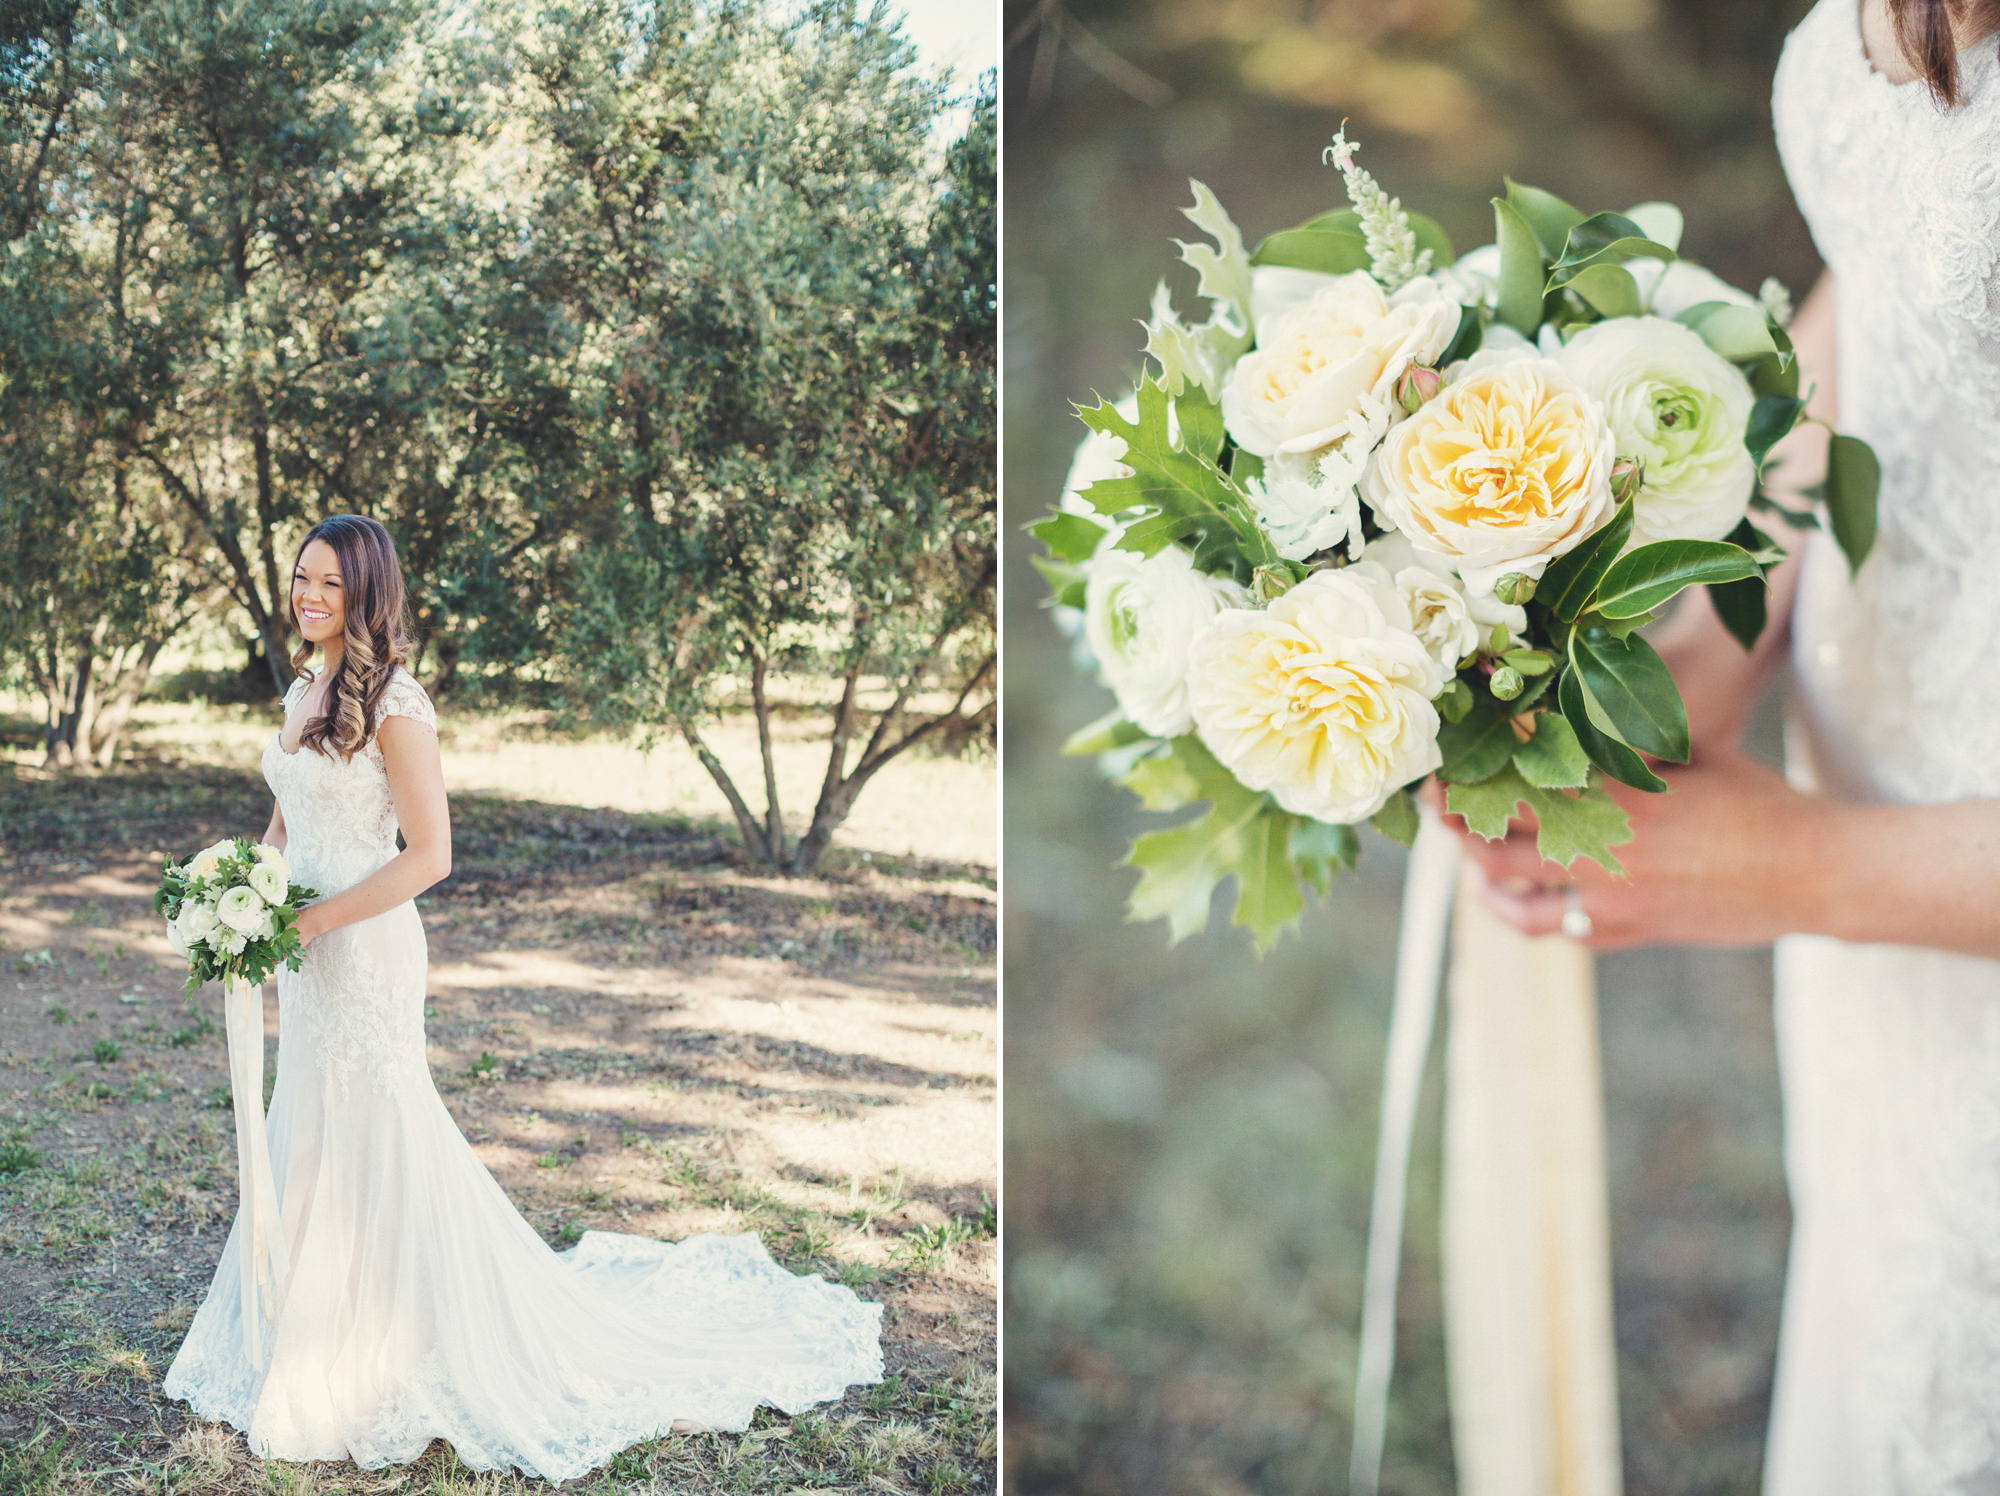 Wedding in Campovida @Anne-Claire Brun 47